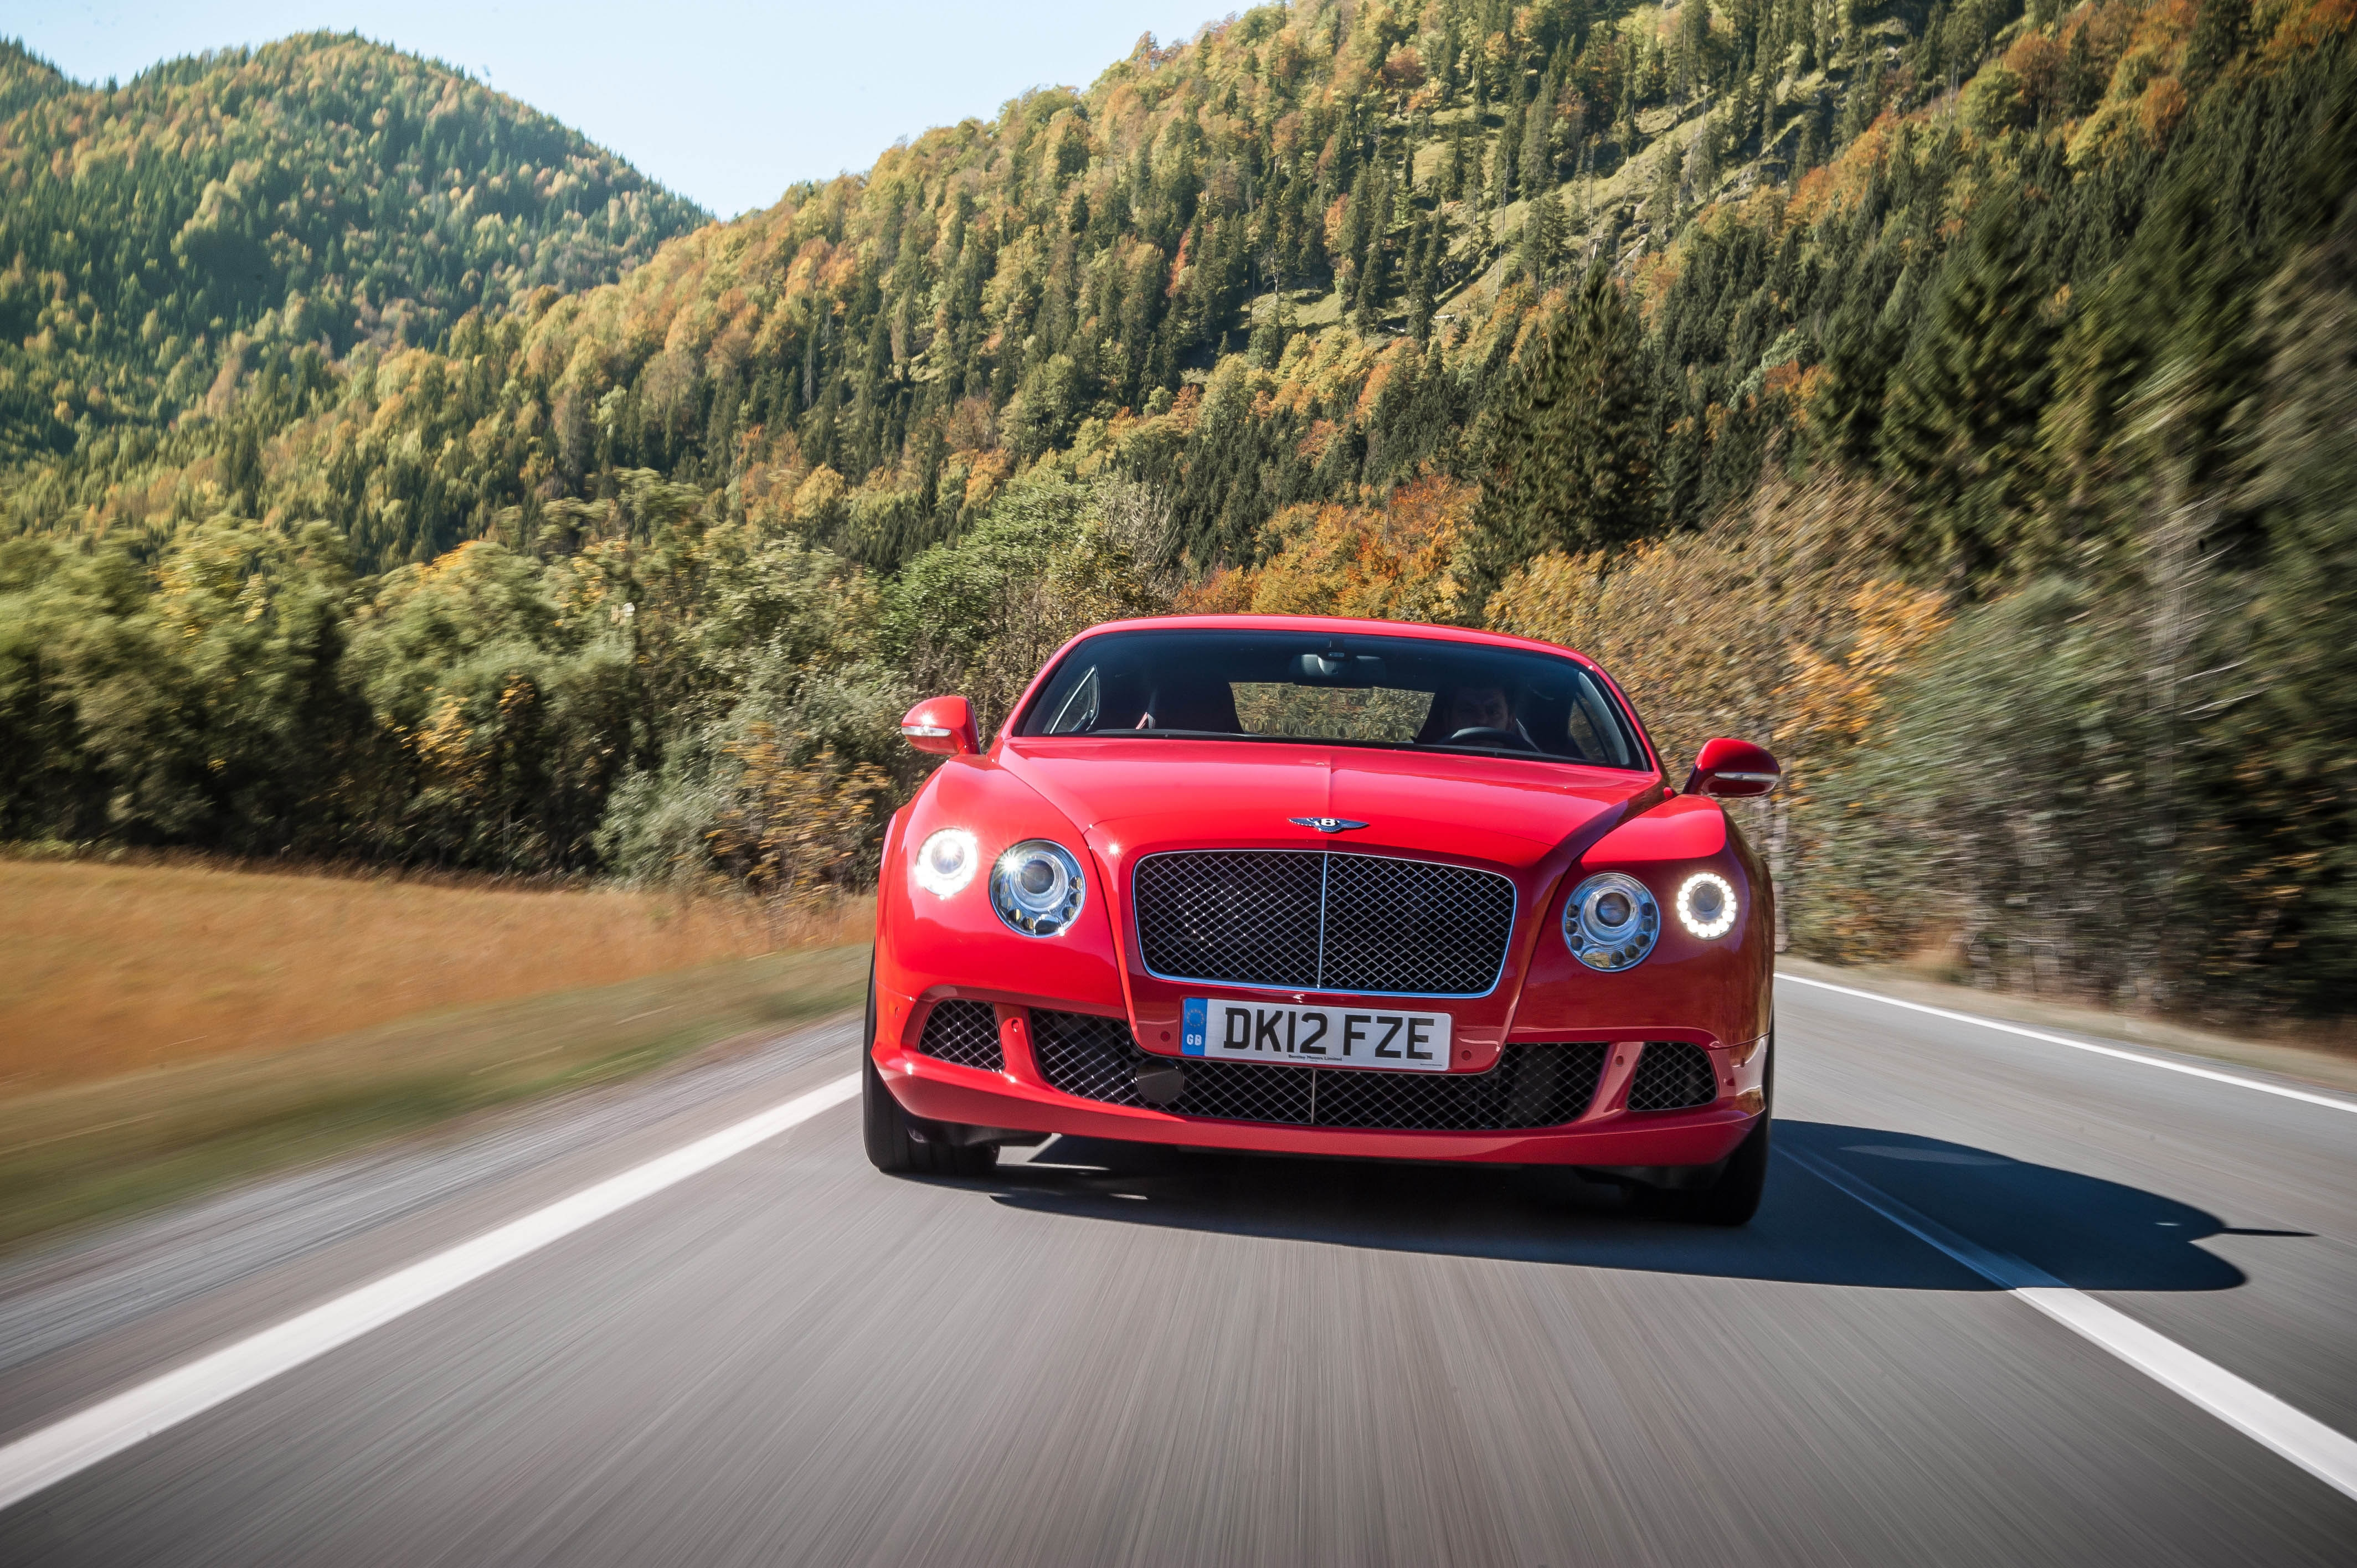 Bentley Continental Gt Speed Review Price Specs And 0 60 Time Evo